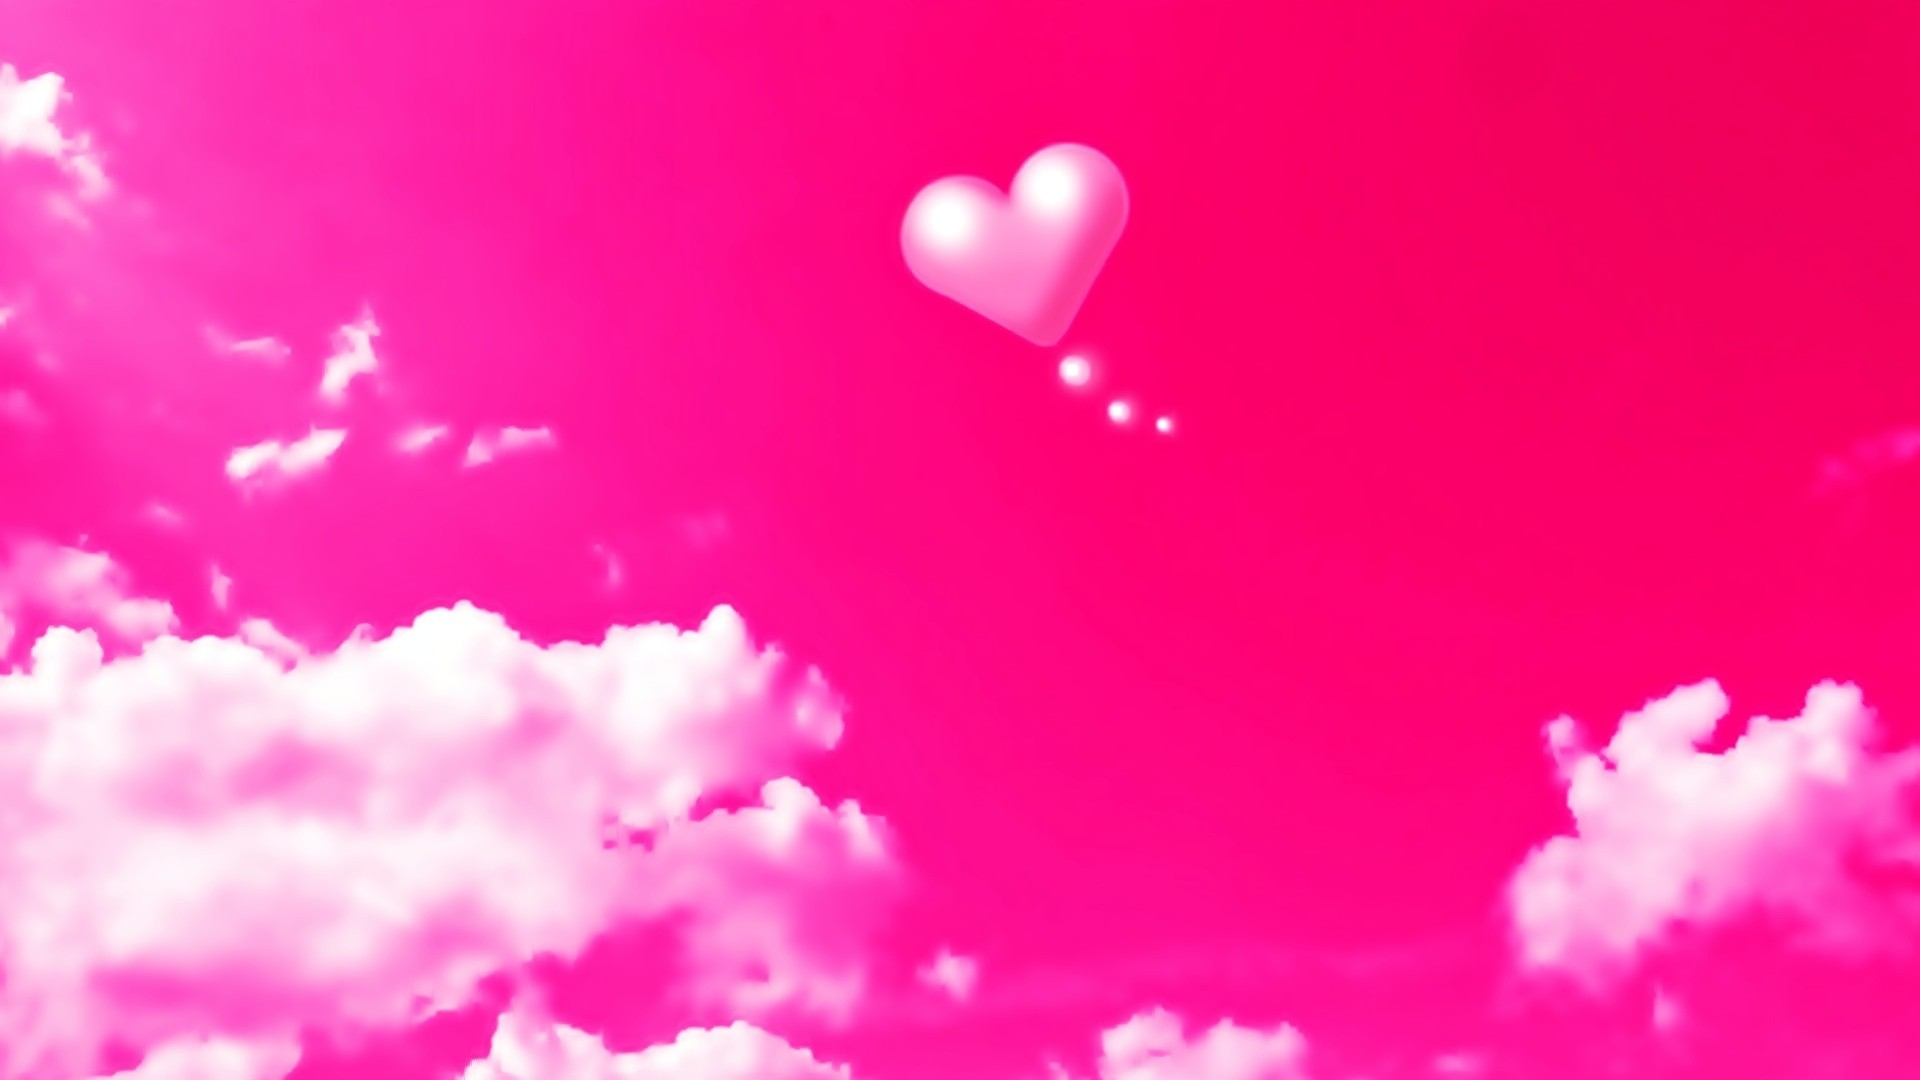 love background download free amazing high resolution wallpapers